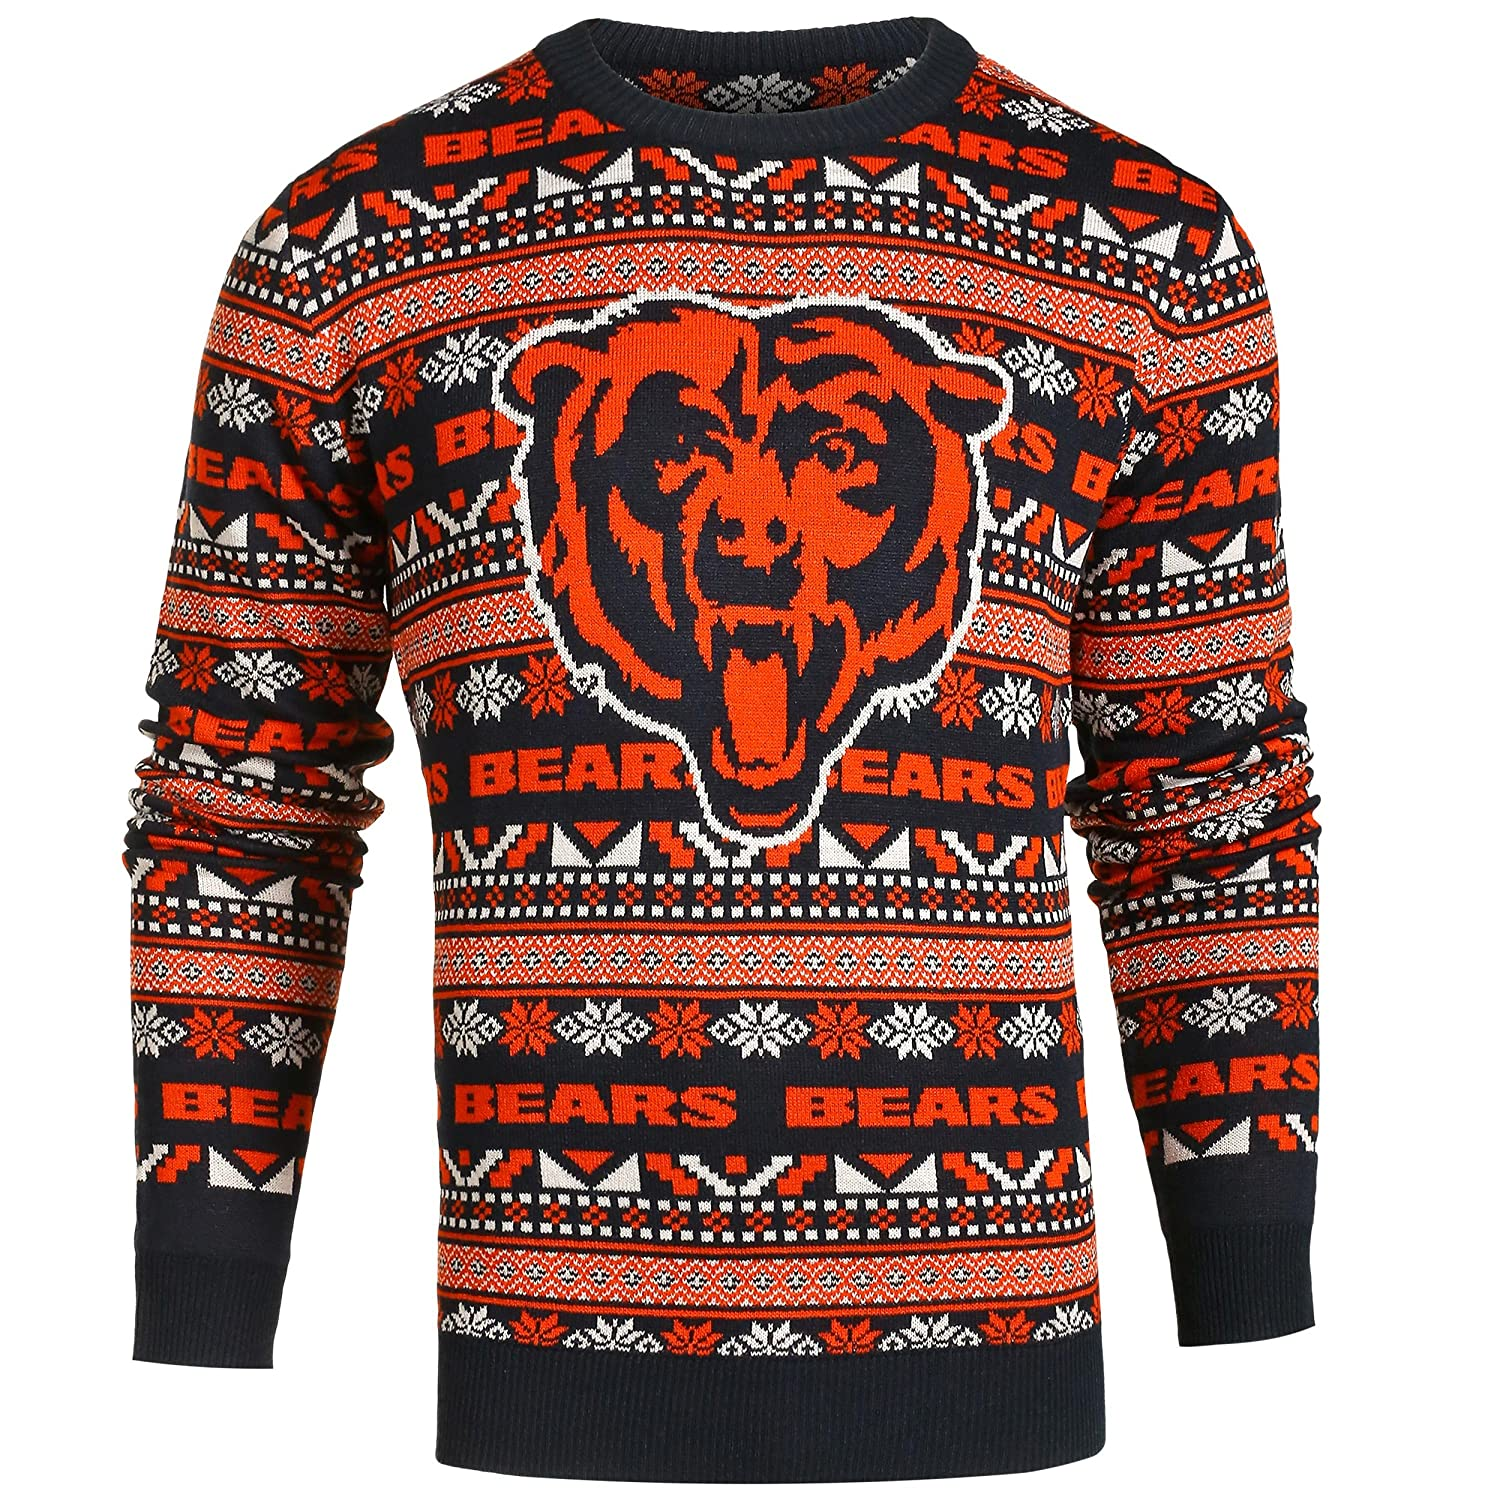 BEARS 2016 UGLY SWEATER